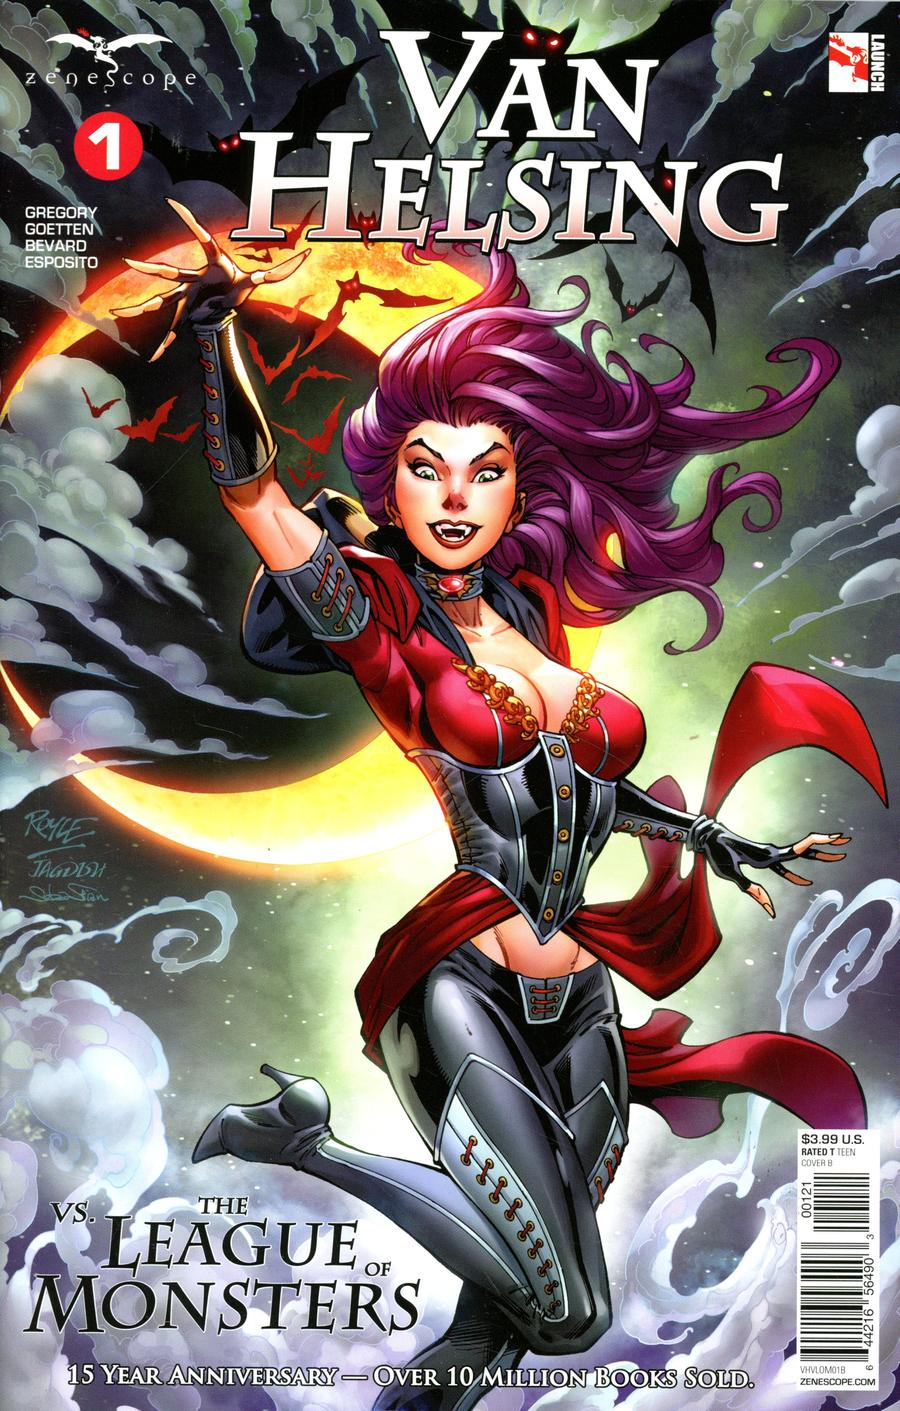 Grimm Fairy Tales Presents Van Helsing vs The League Of Monsters #1 Cover B John Royle